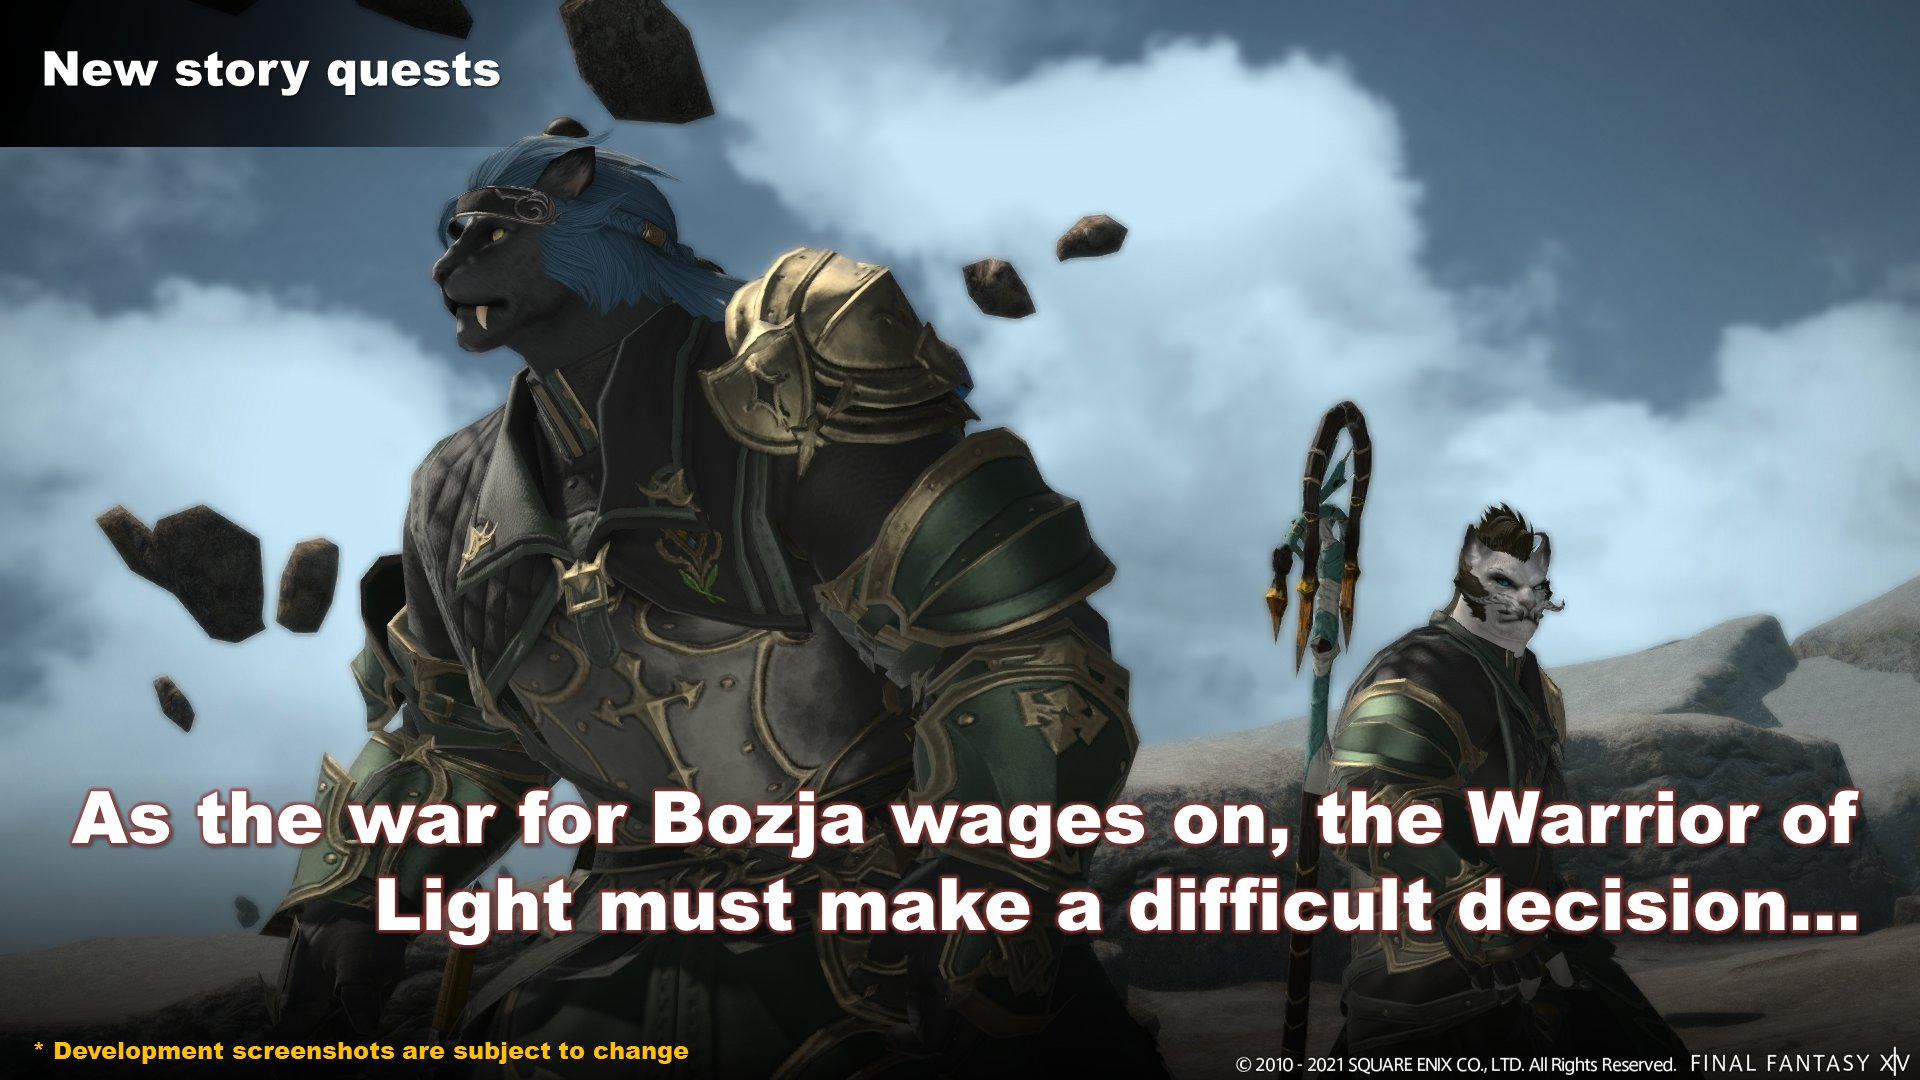 New story quests. Subtitle text reads: As the war for Bozja wages on, the Warrior of Light must make a difficult decision...